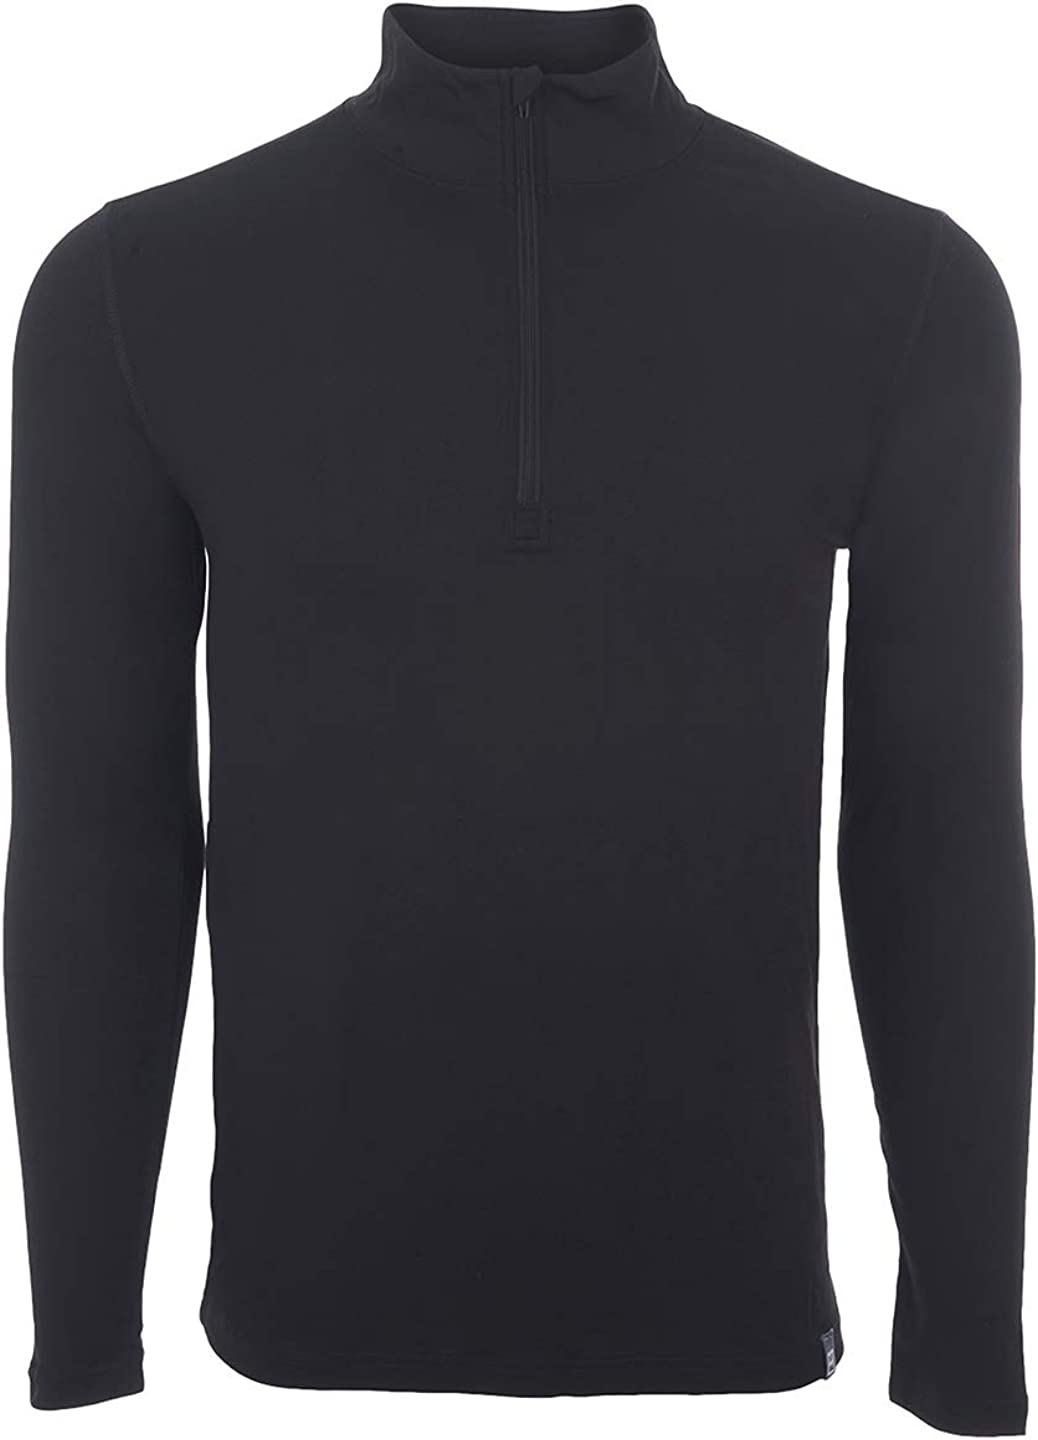 Directly managed store Avalanche Men's Moisture Wicking Wool Pullover Max 54% OFF Zip Half Blend Ba